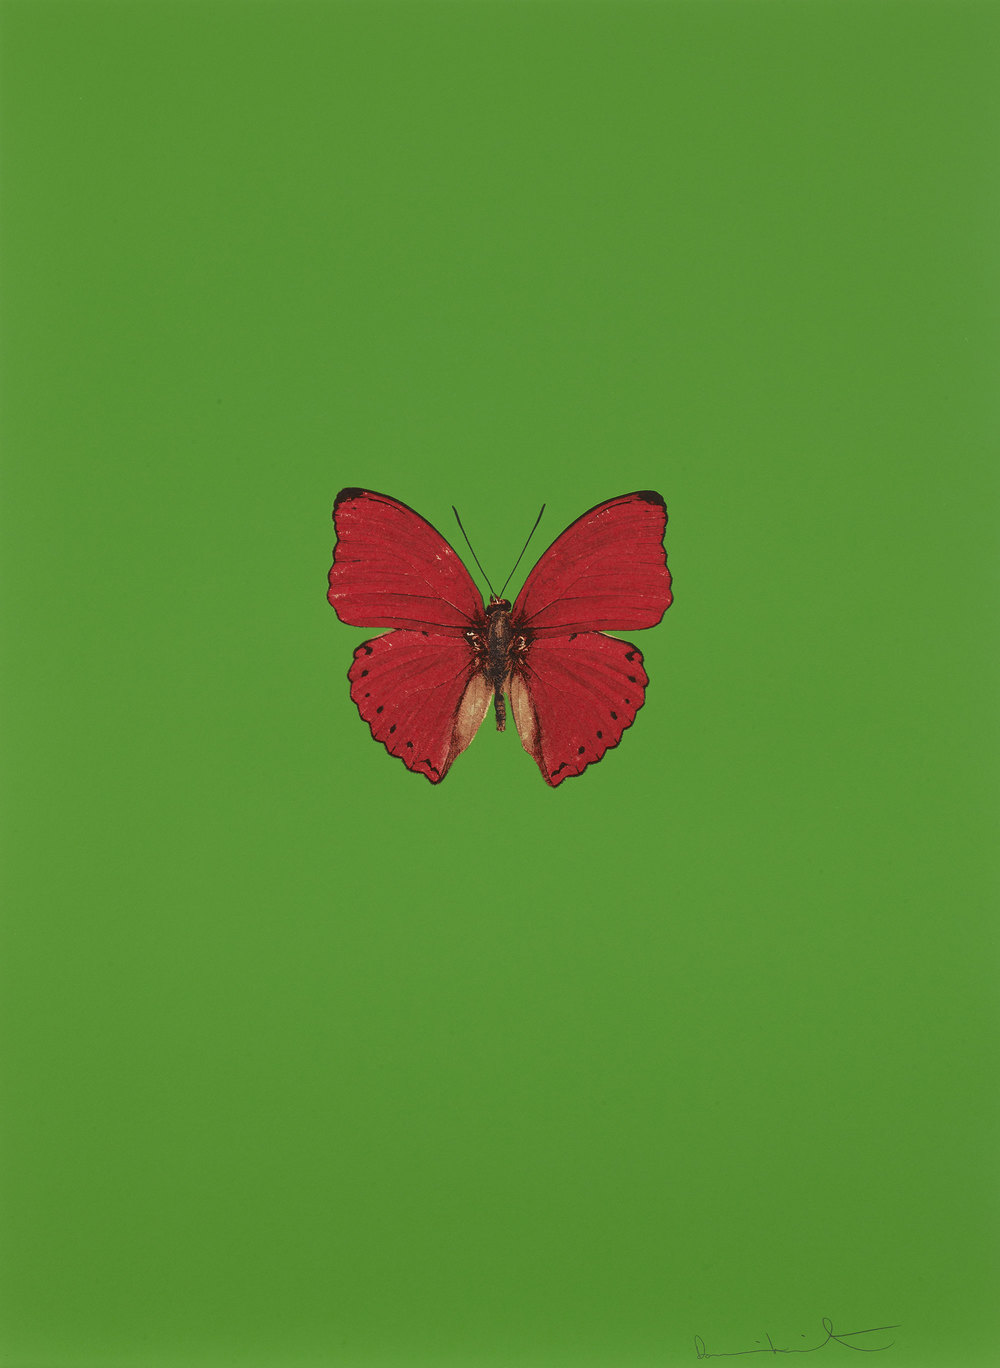 Damien Hirst   It's a Beautiful Day (verde) • 2013 Gravura polimerizada Edição: 55 66.5 x 49 cm